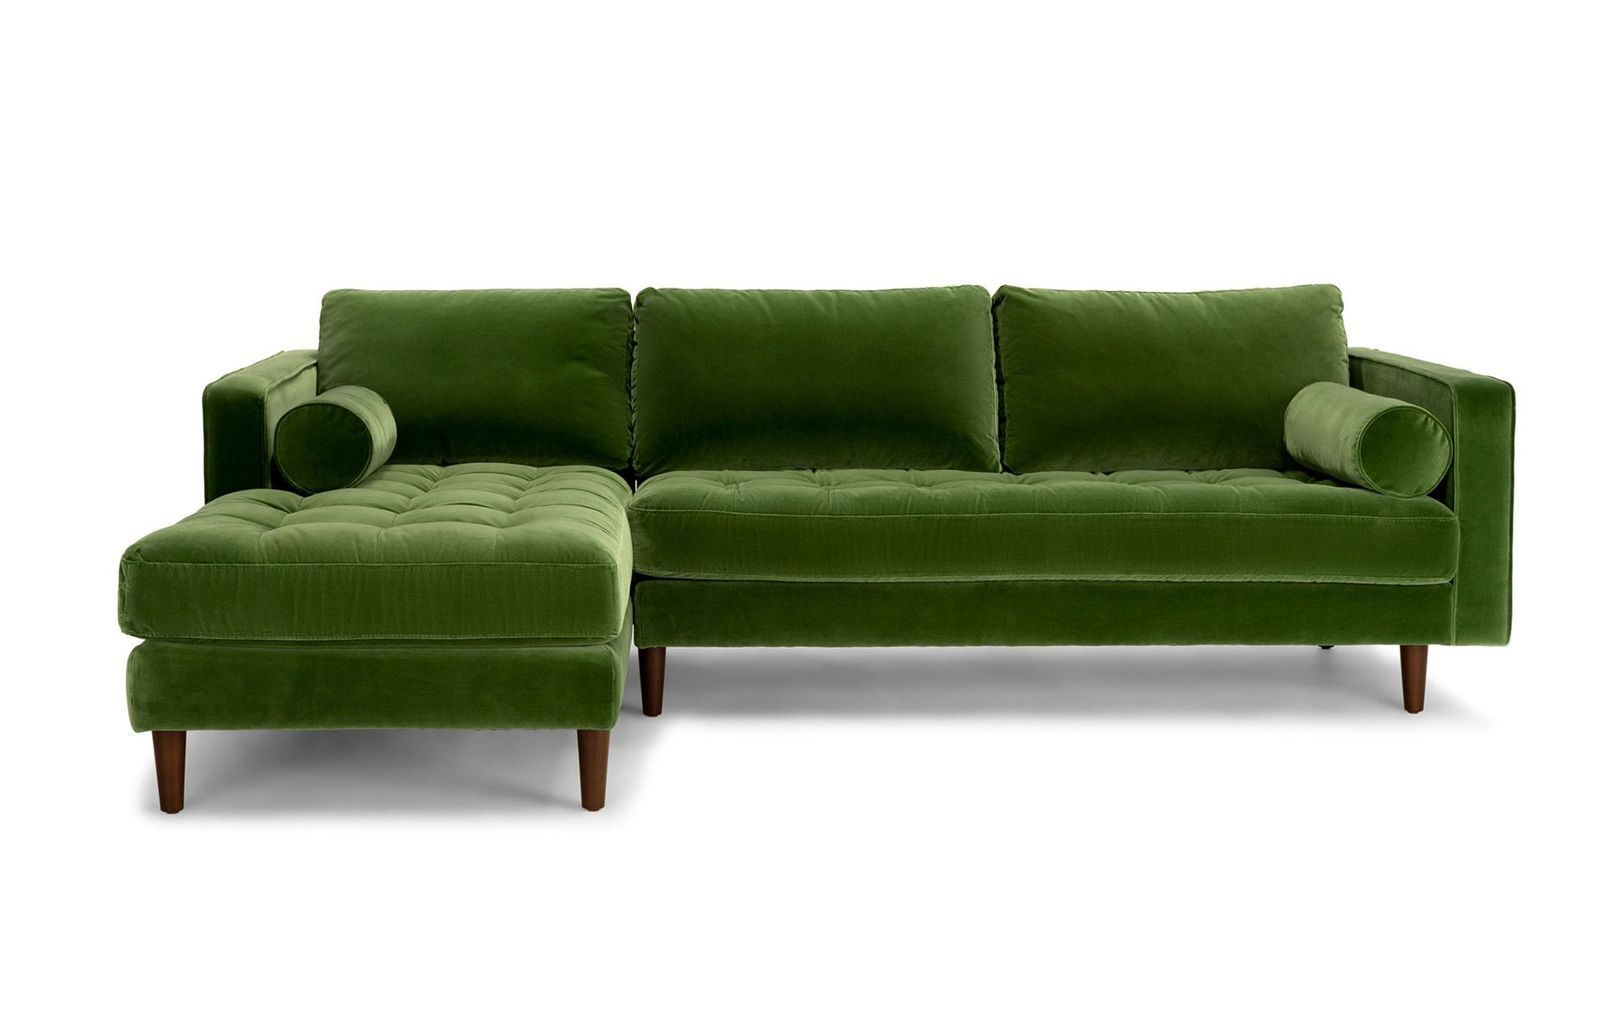 Six Statement Green Sofas L Shaped Sofa Bed Sofa Bed Green